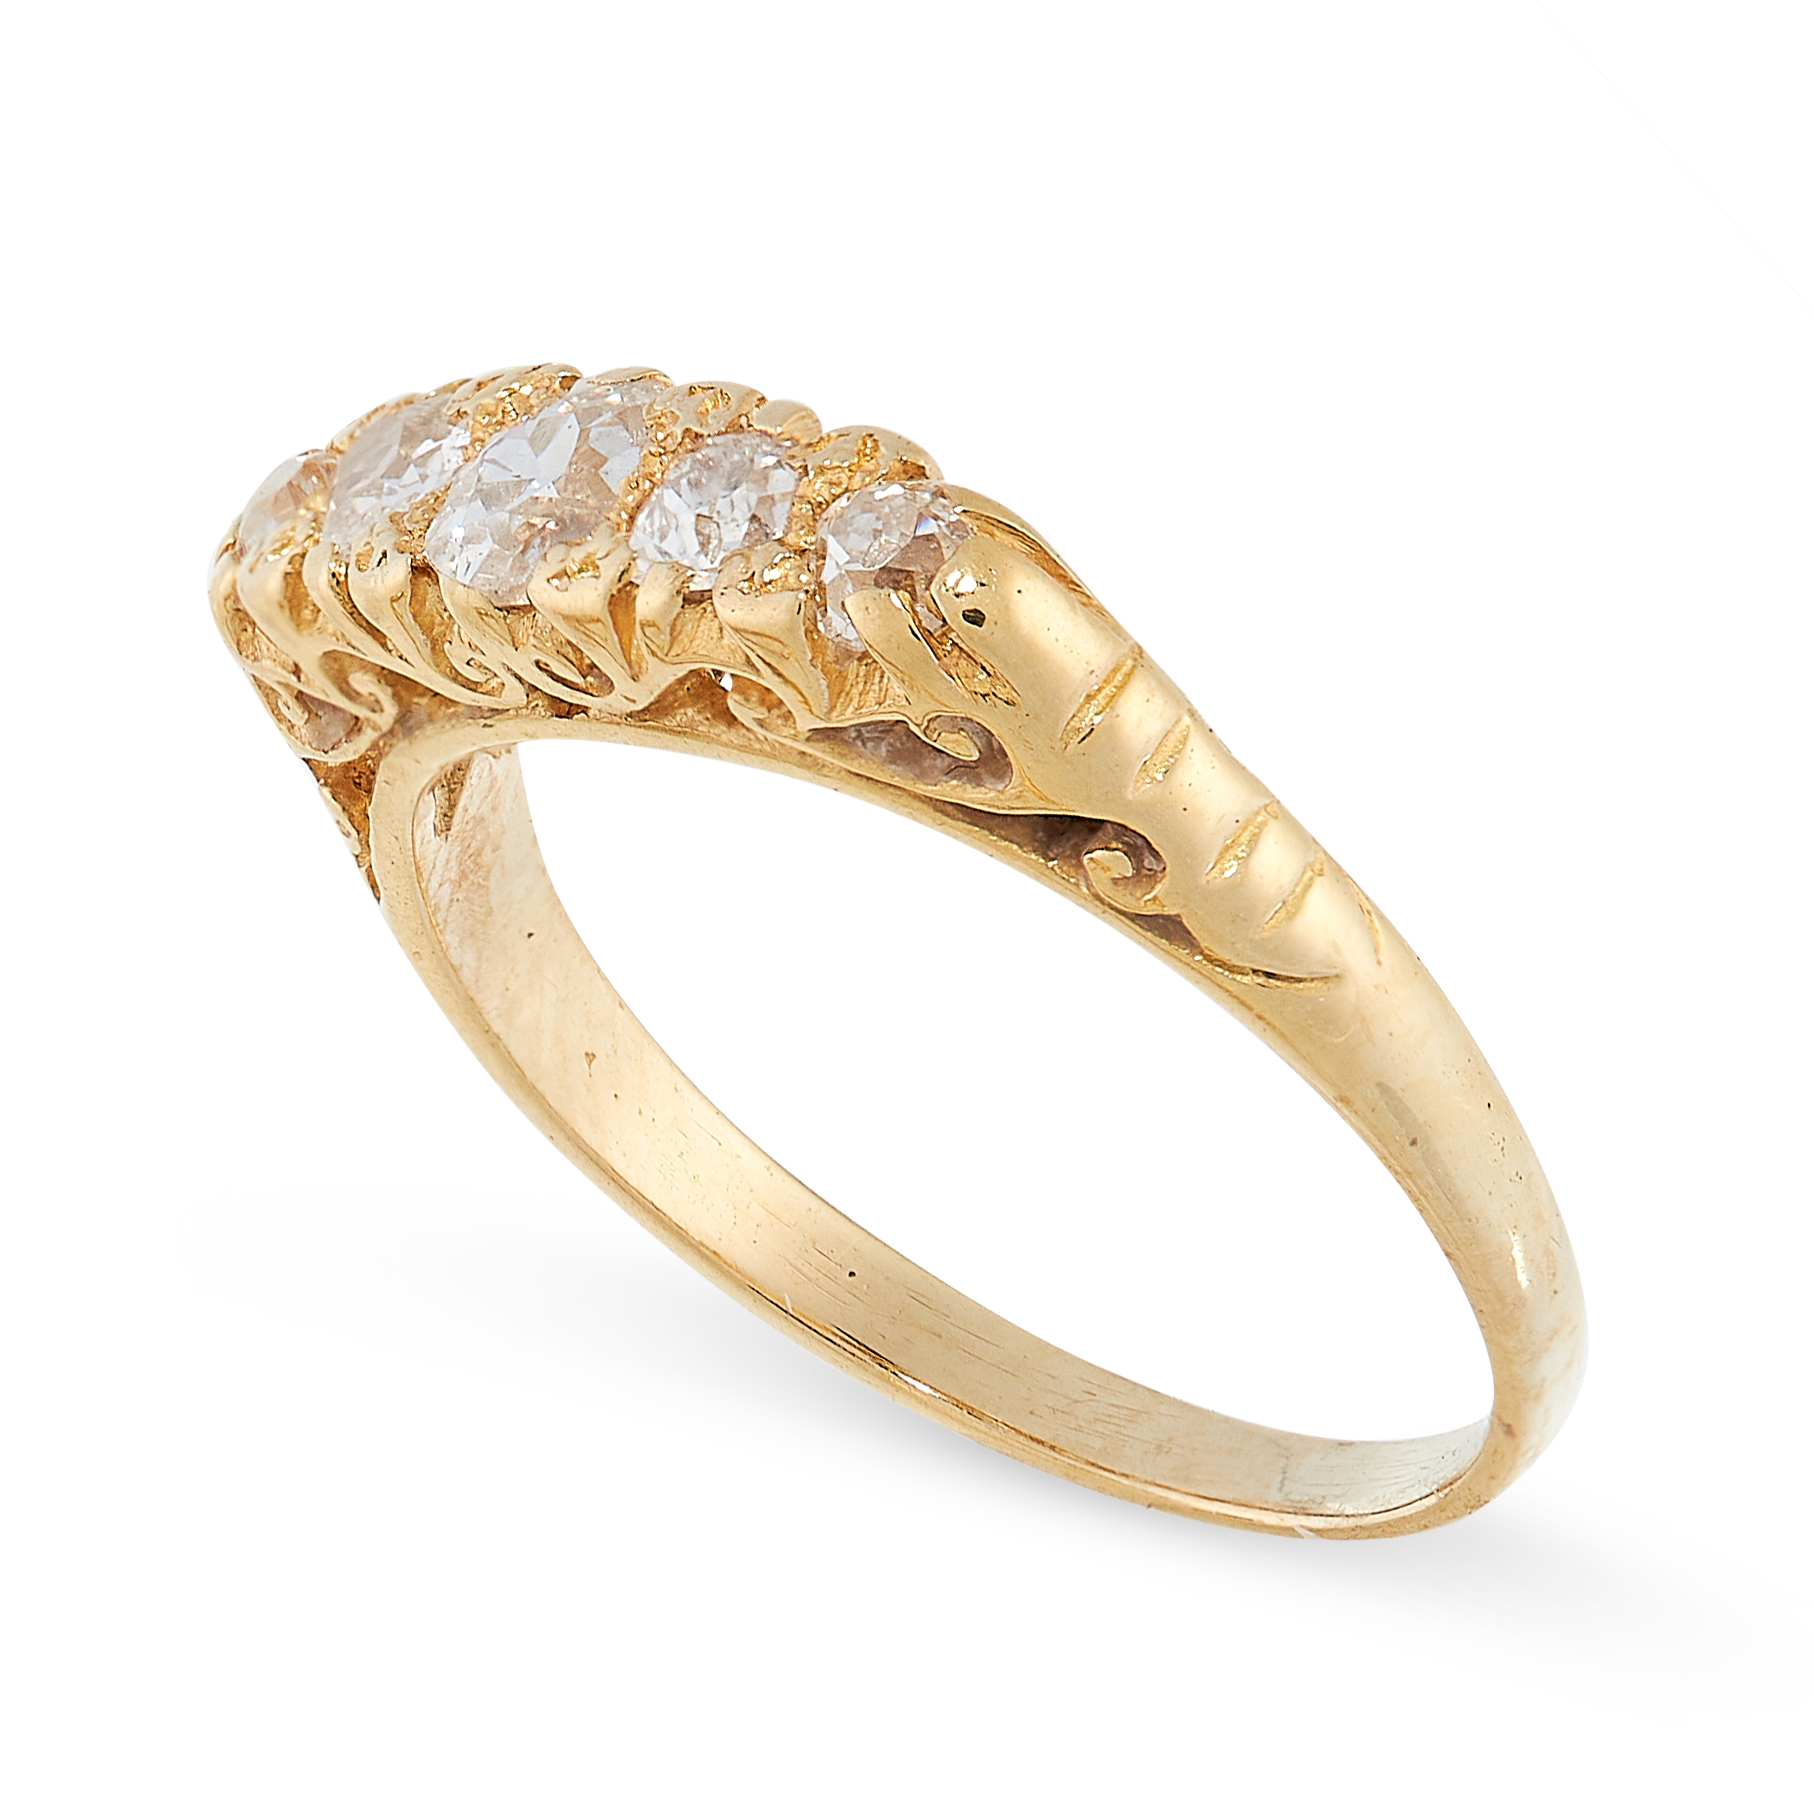 ANTIQUE DIAMOND RING in 18ct yellow gold, set with five graduated old cut diamonds, stamped 18C, - Image 2 of 2